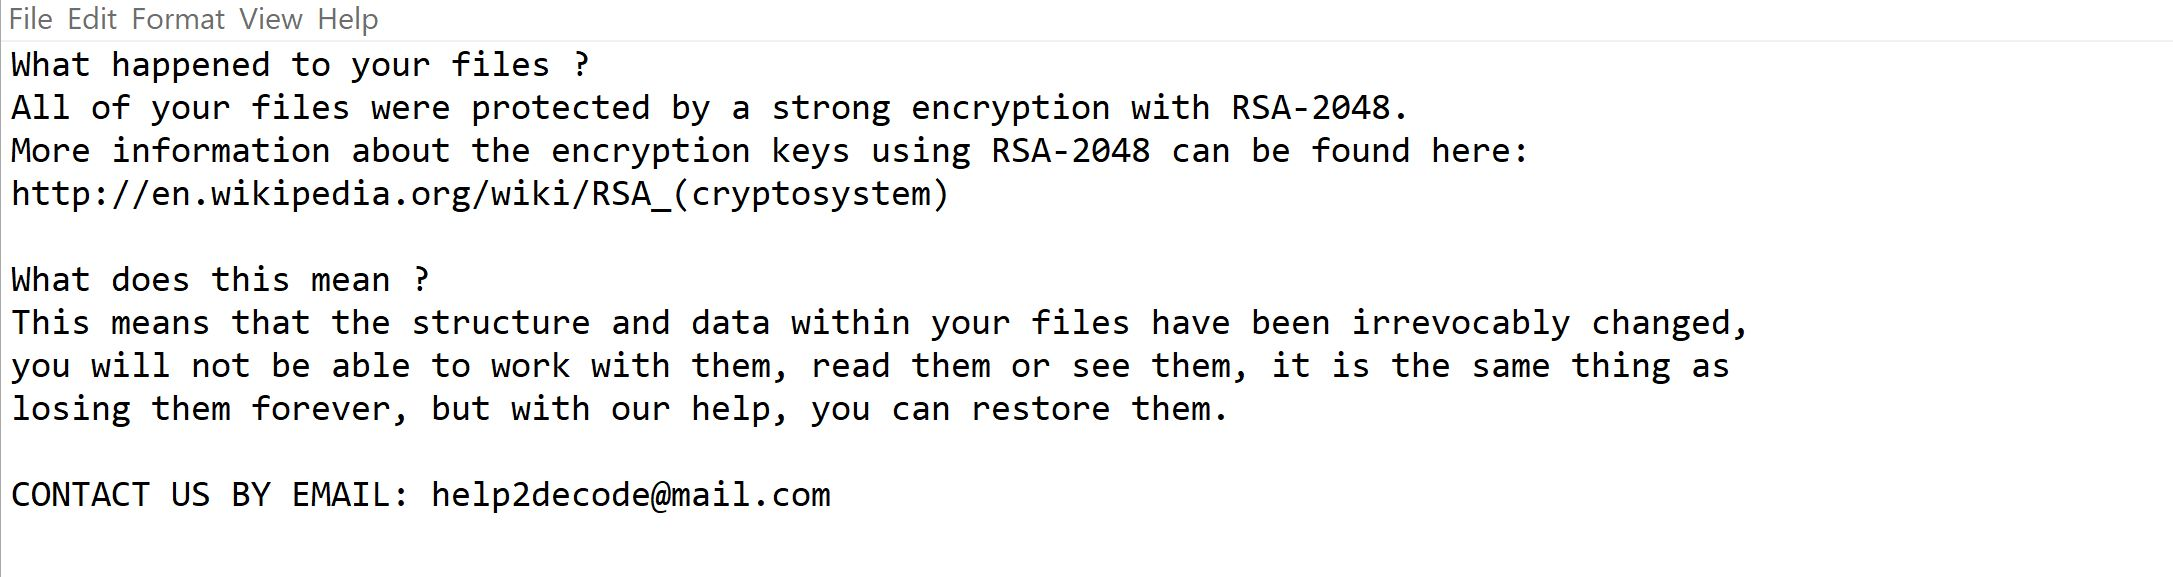 Image: a800 Ransomware